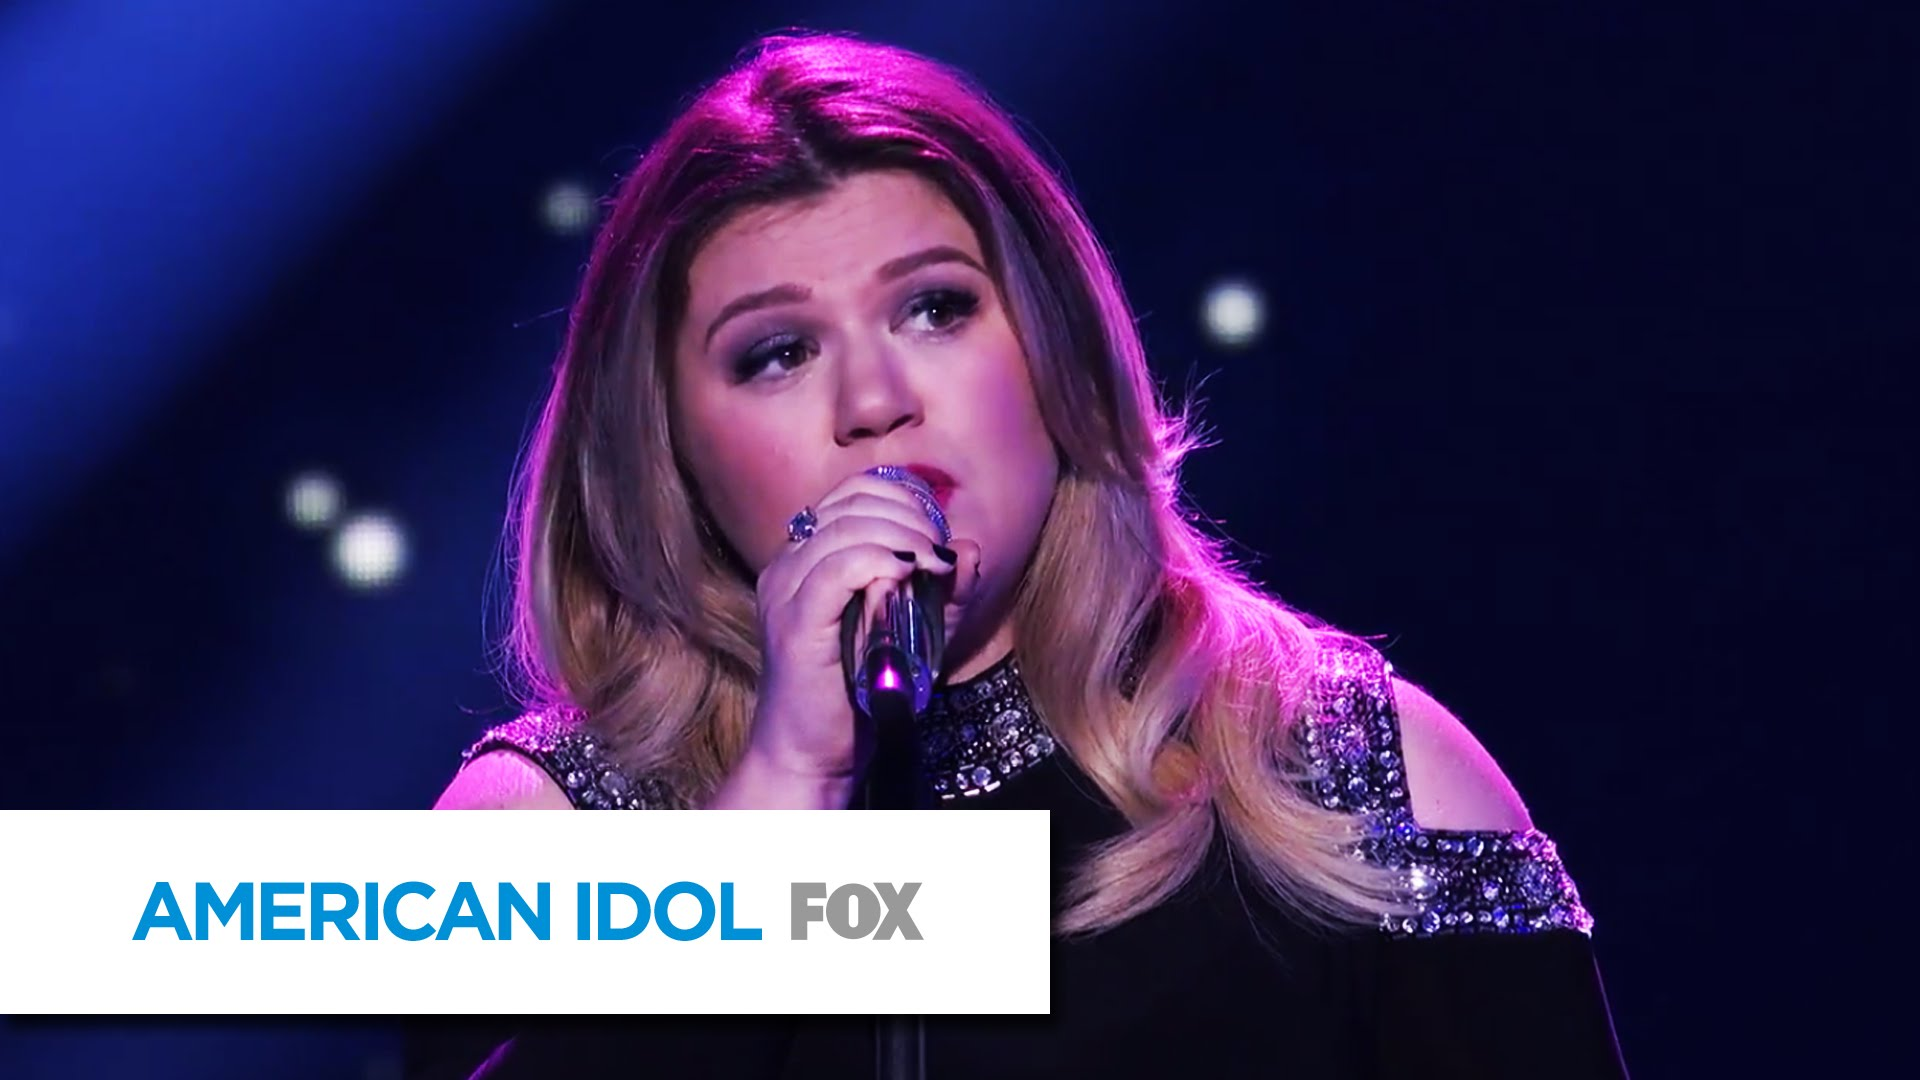 Kelly Clarkson first 'American Idol' contestant to earn 100 Billboard No. 1s